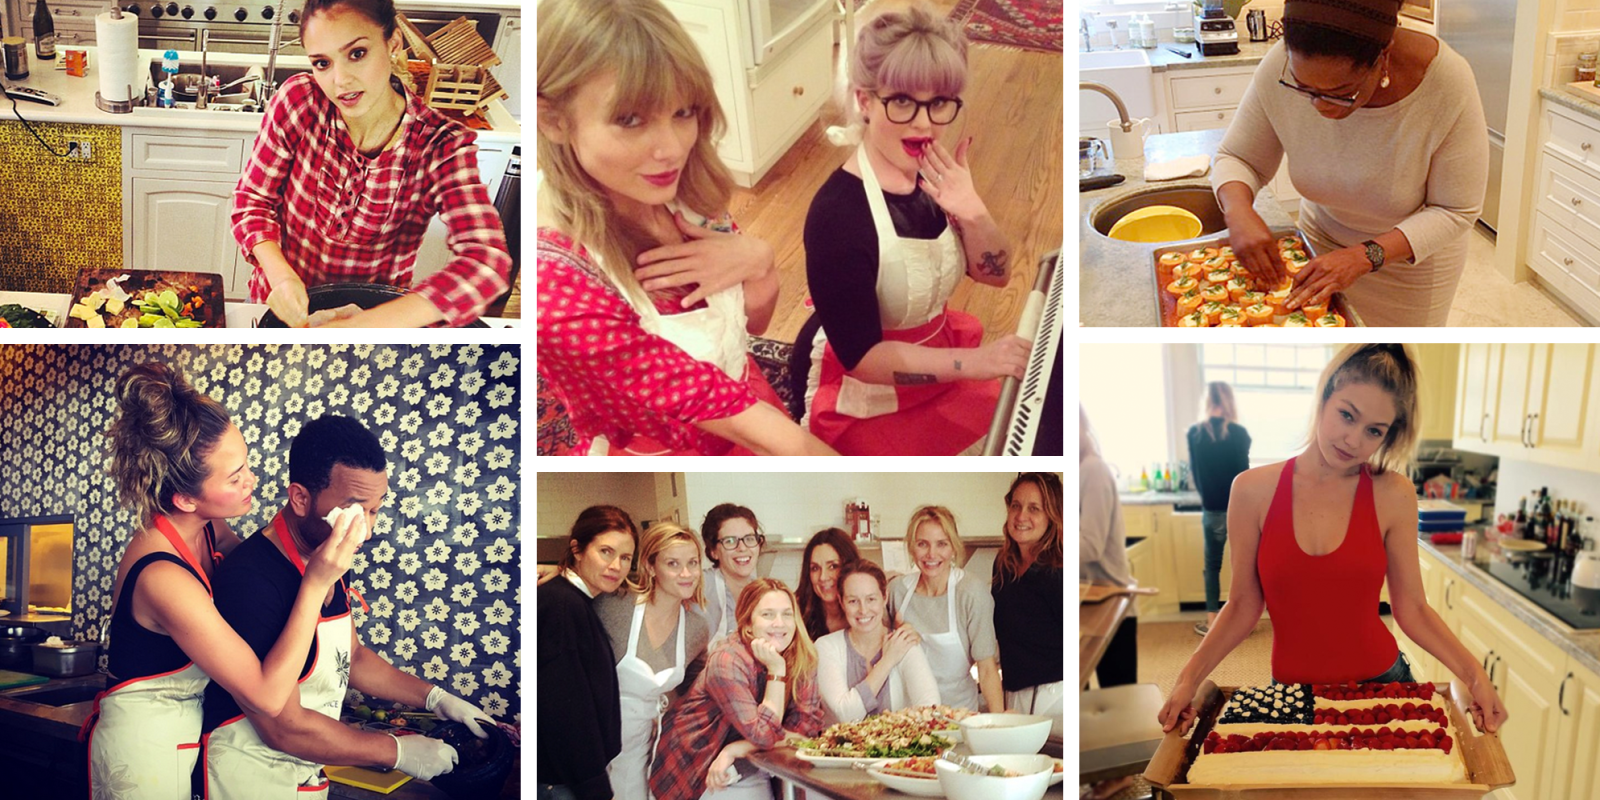 Our 10 Favorite Celebrity Cookbooks - The Daily Meal